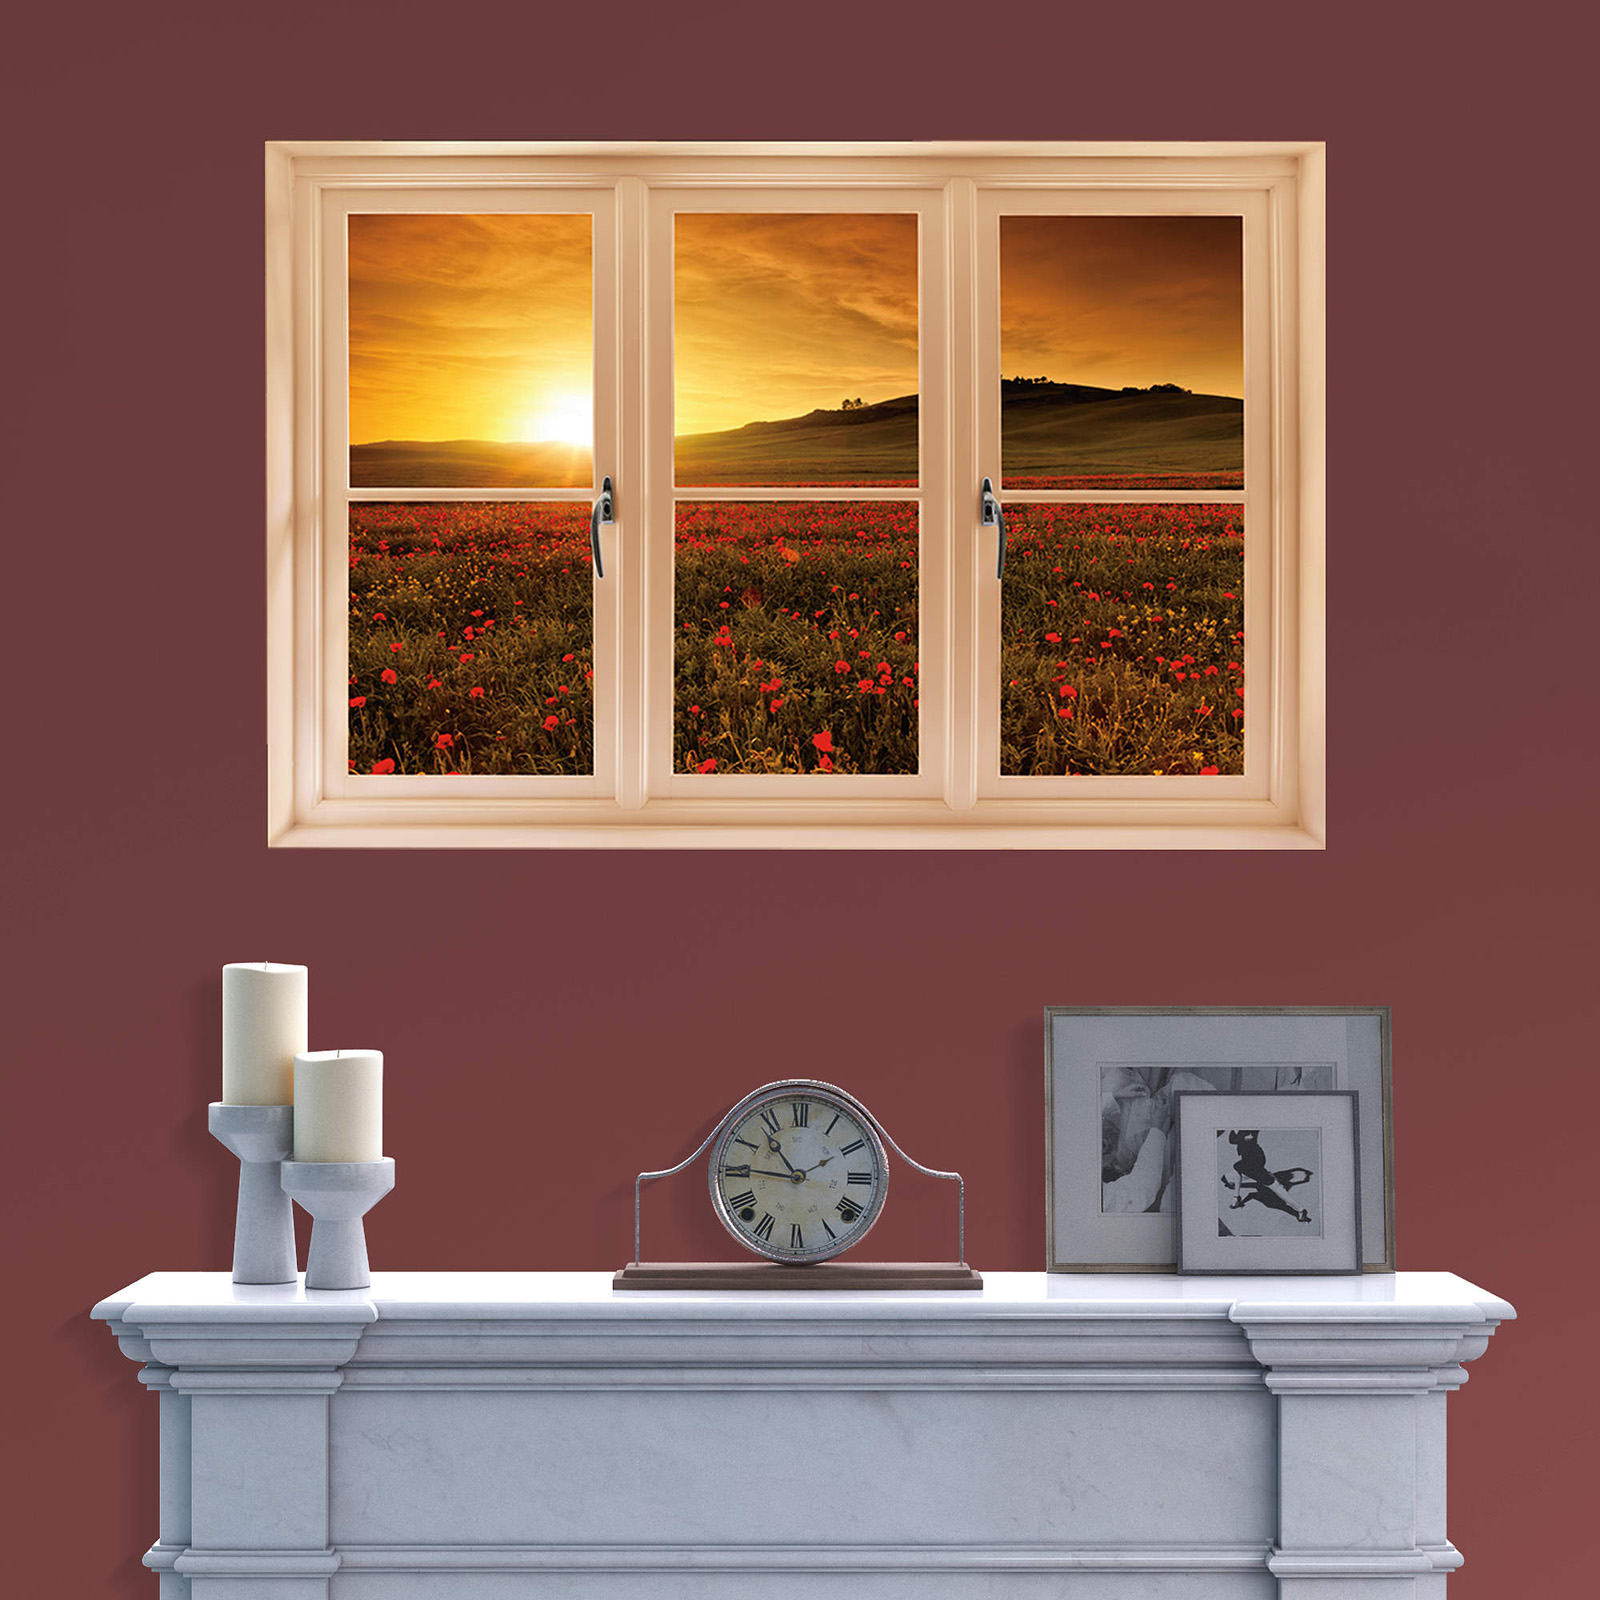 Tuscany panorama windows decals trompe 28 images - Sticker trompe l oeil mural ...